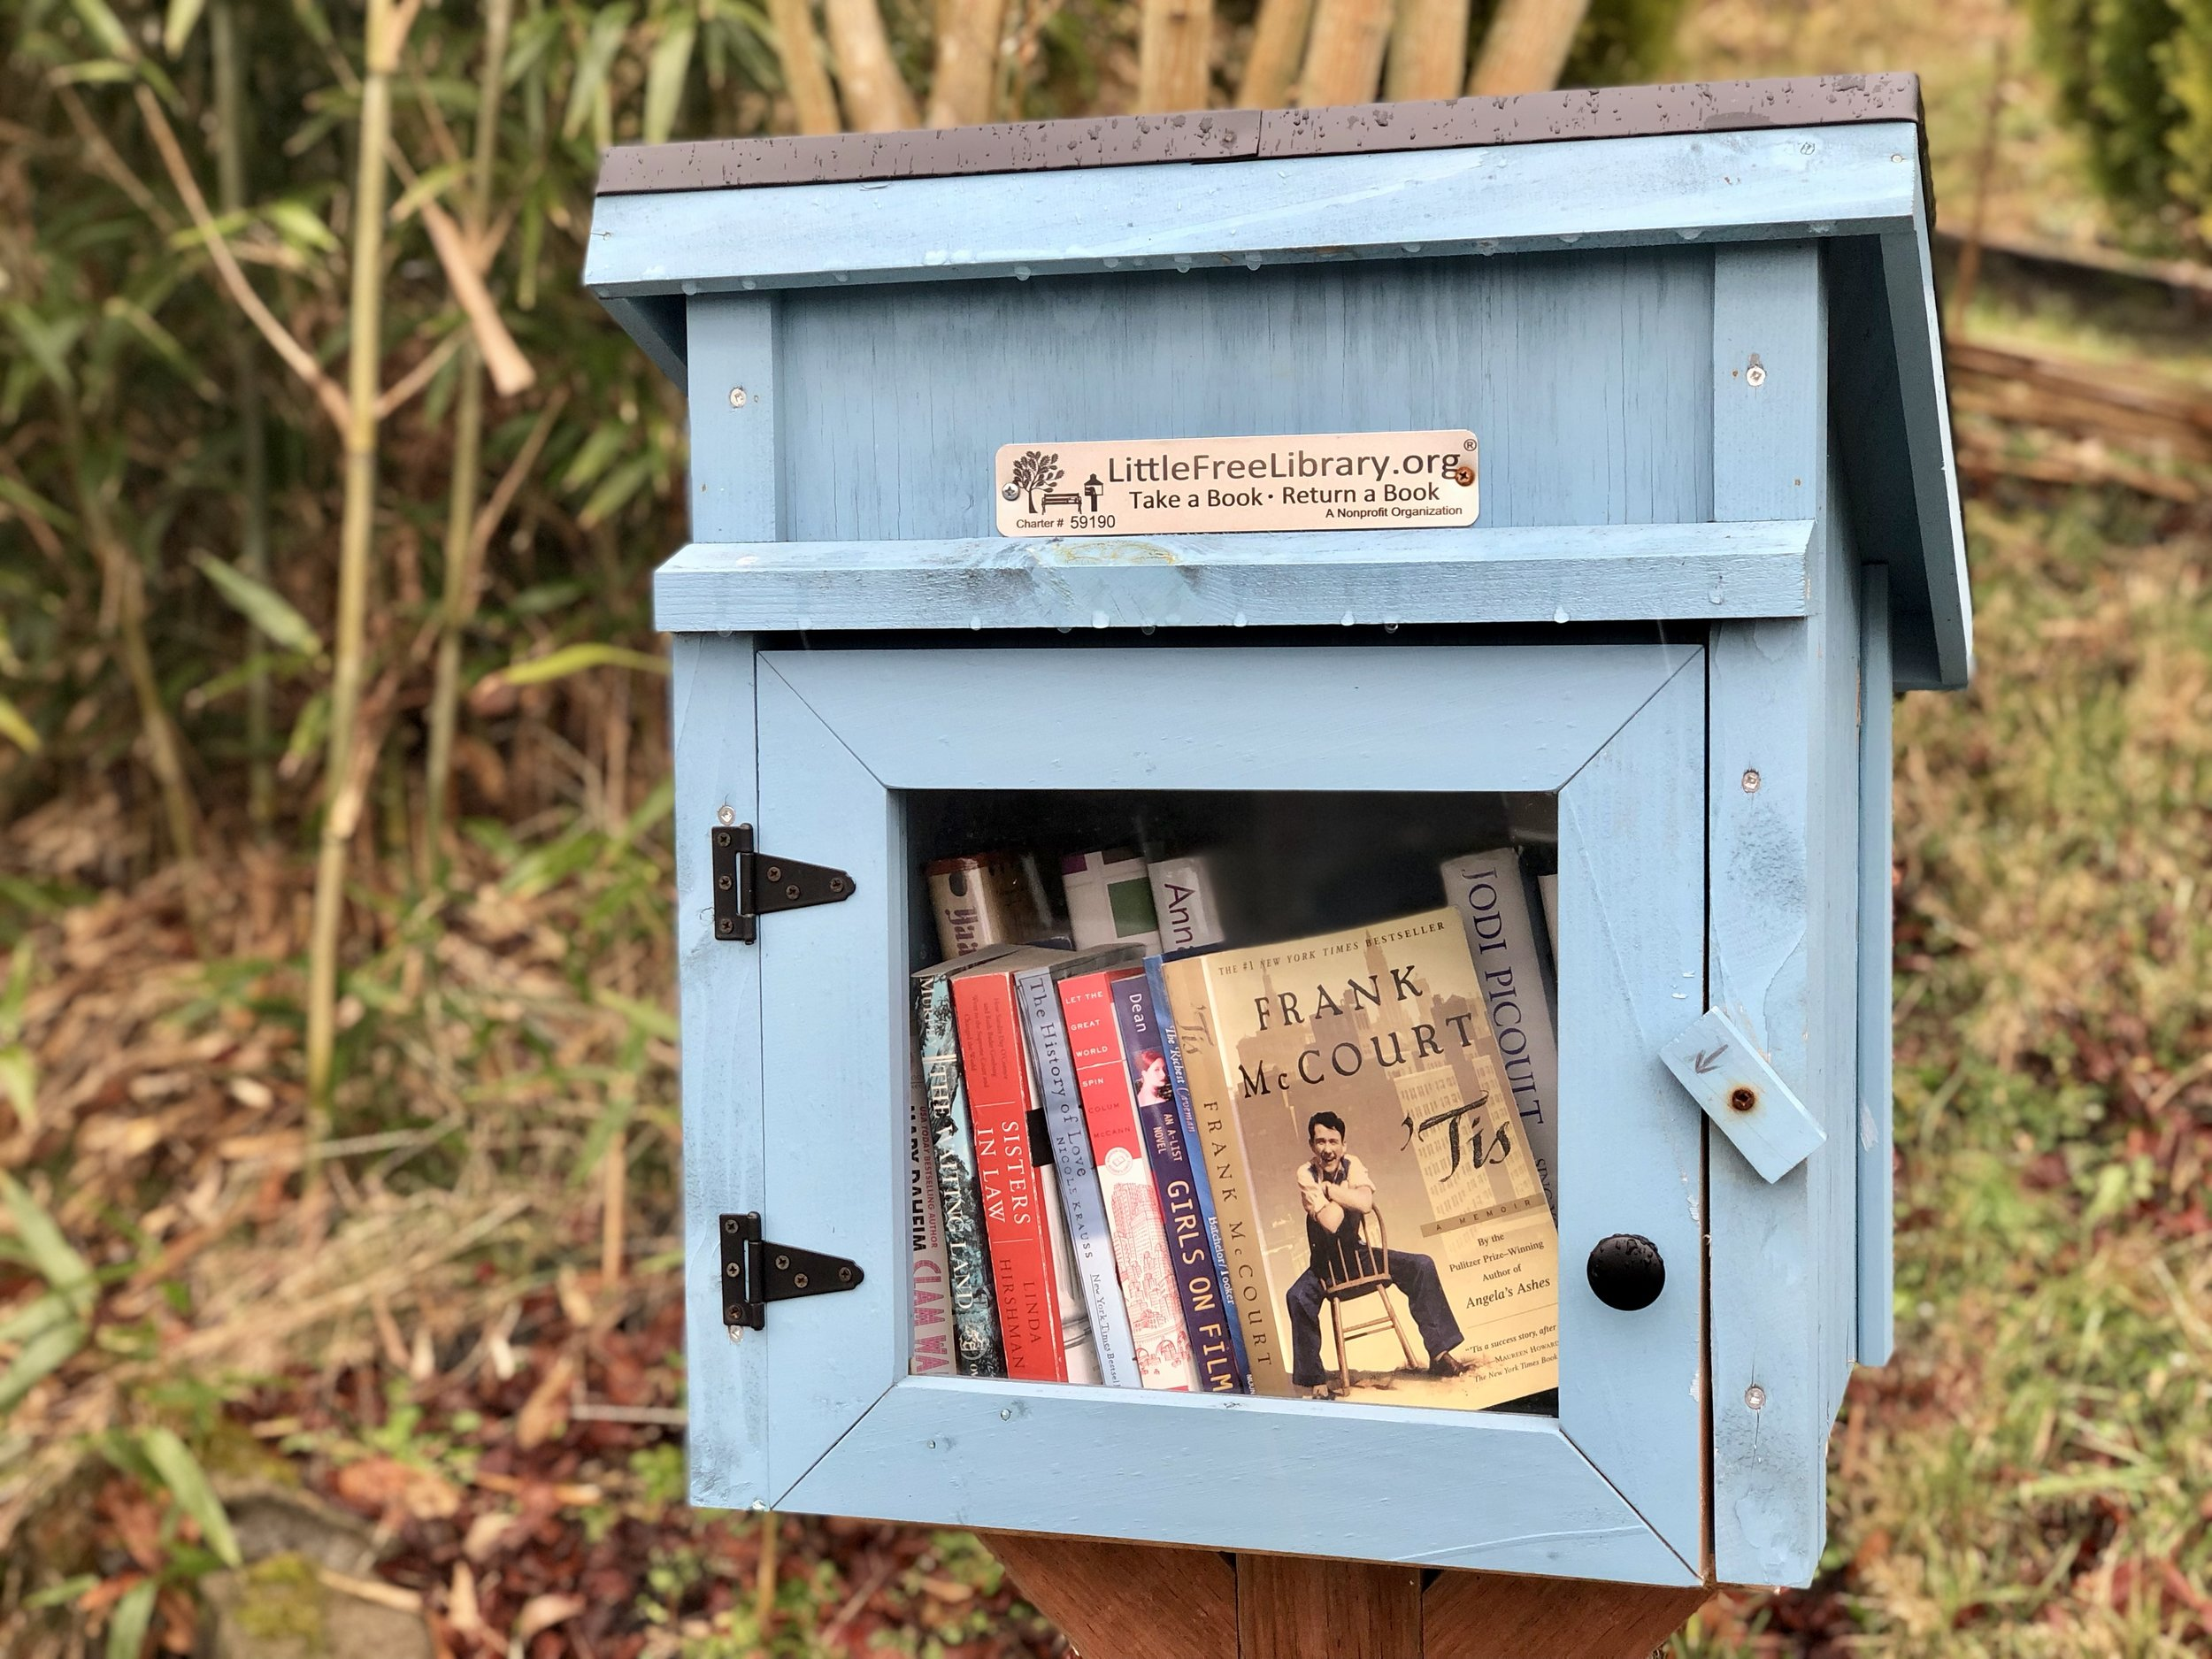 One of many Little Free Libraries in Tacoma. You'll find this library on North Fernside Drive, on the hillside above Titlow Beach and the Narrows.